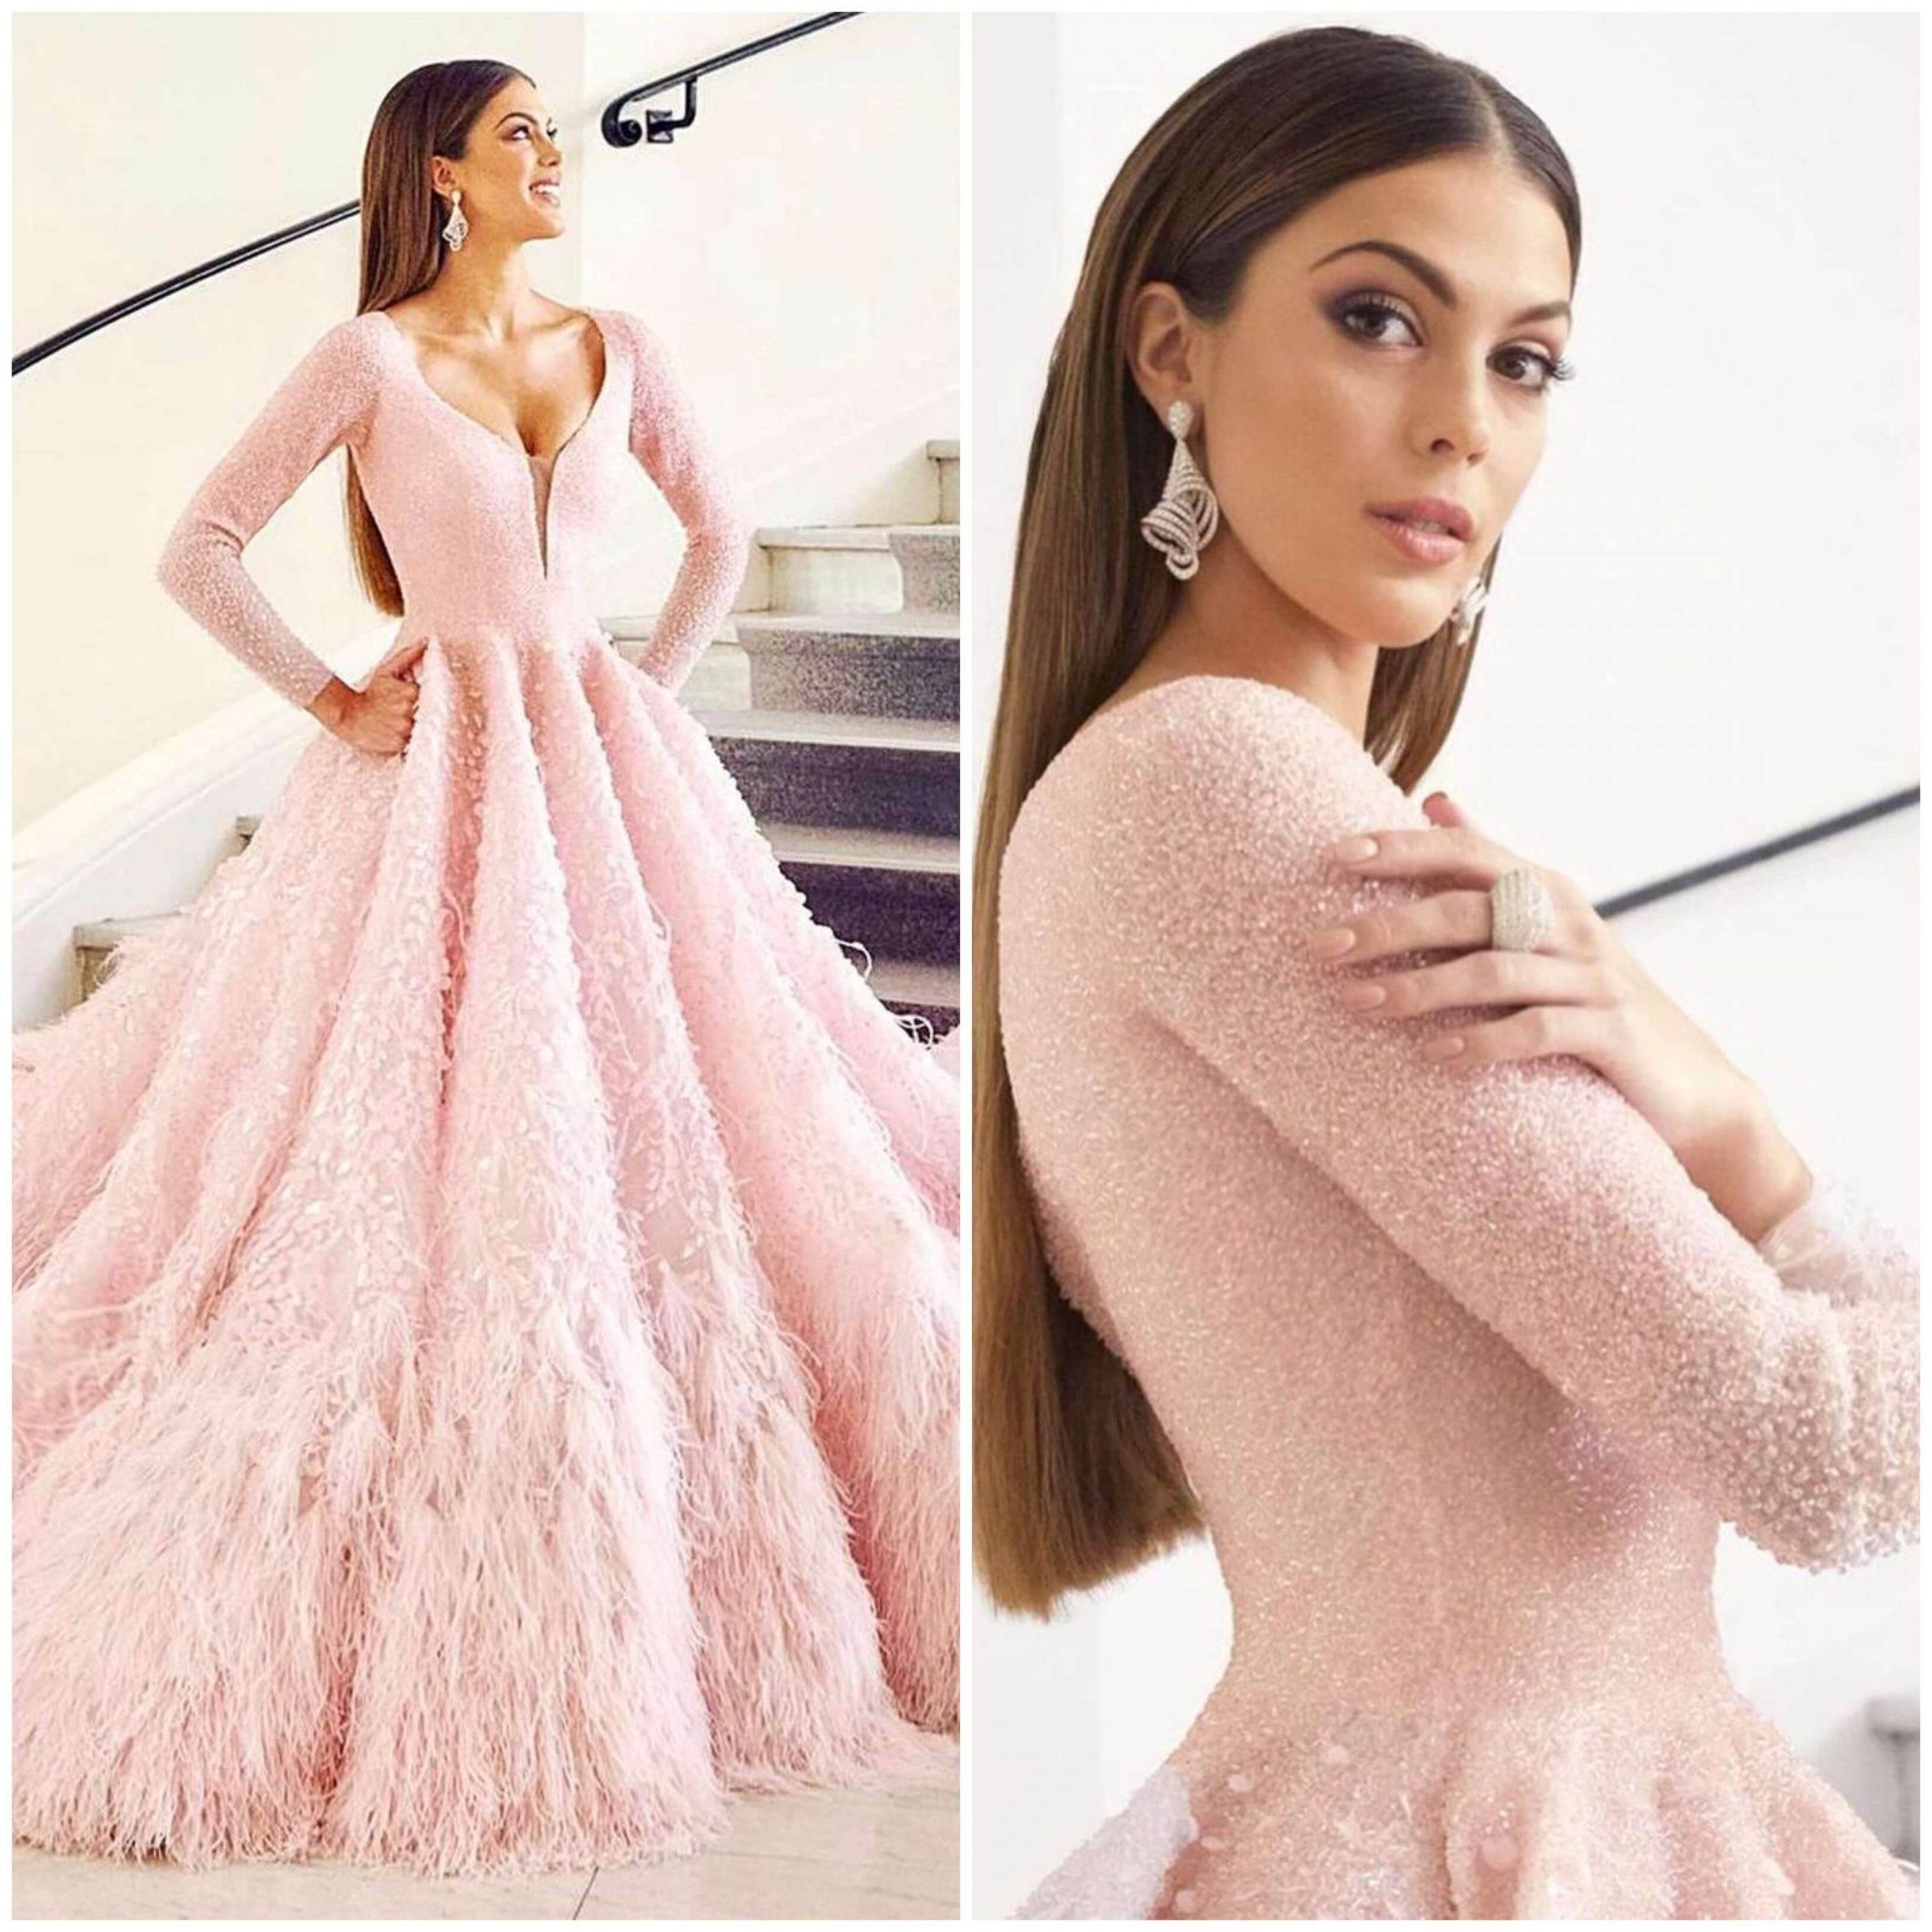 Well Known Couture Light Pink Ball Gown for wedding functions